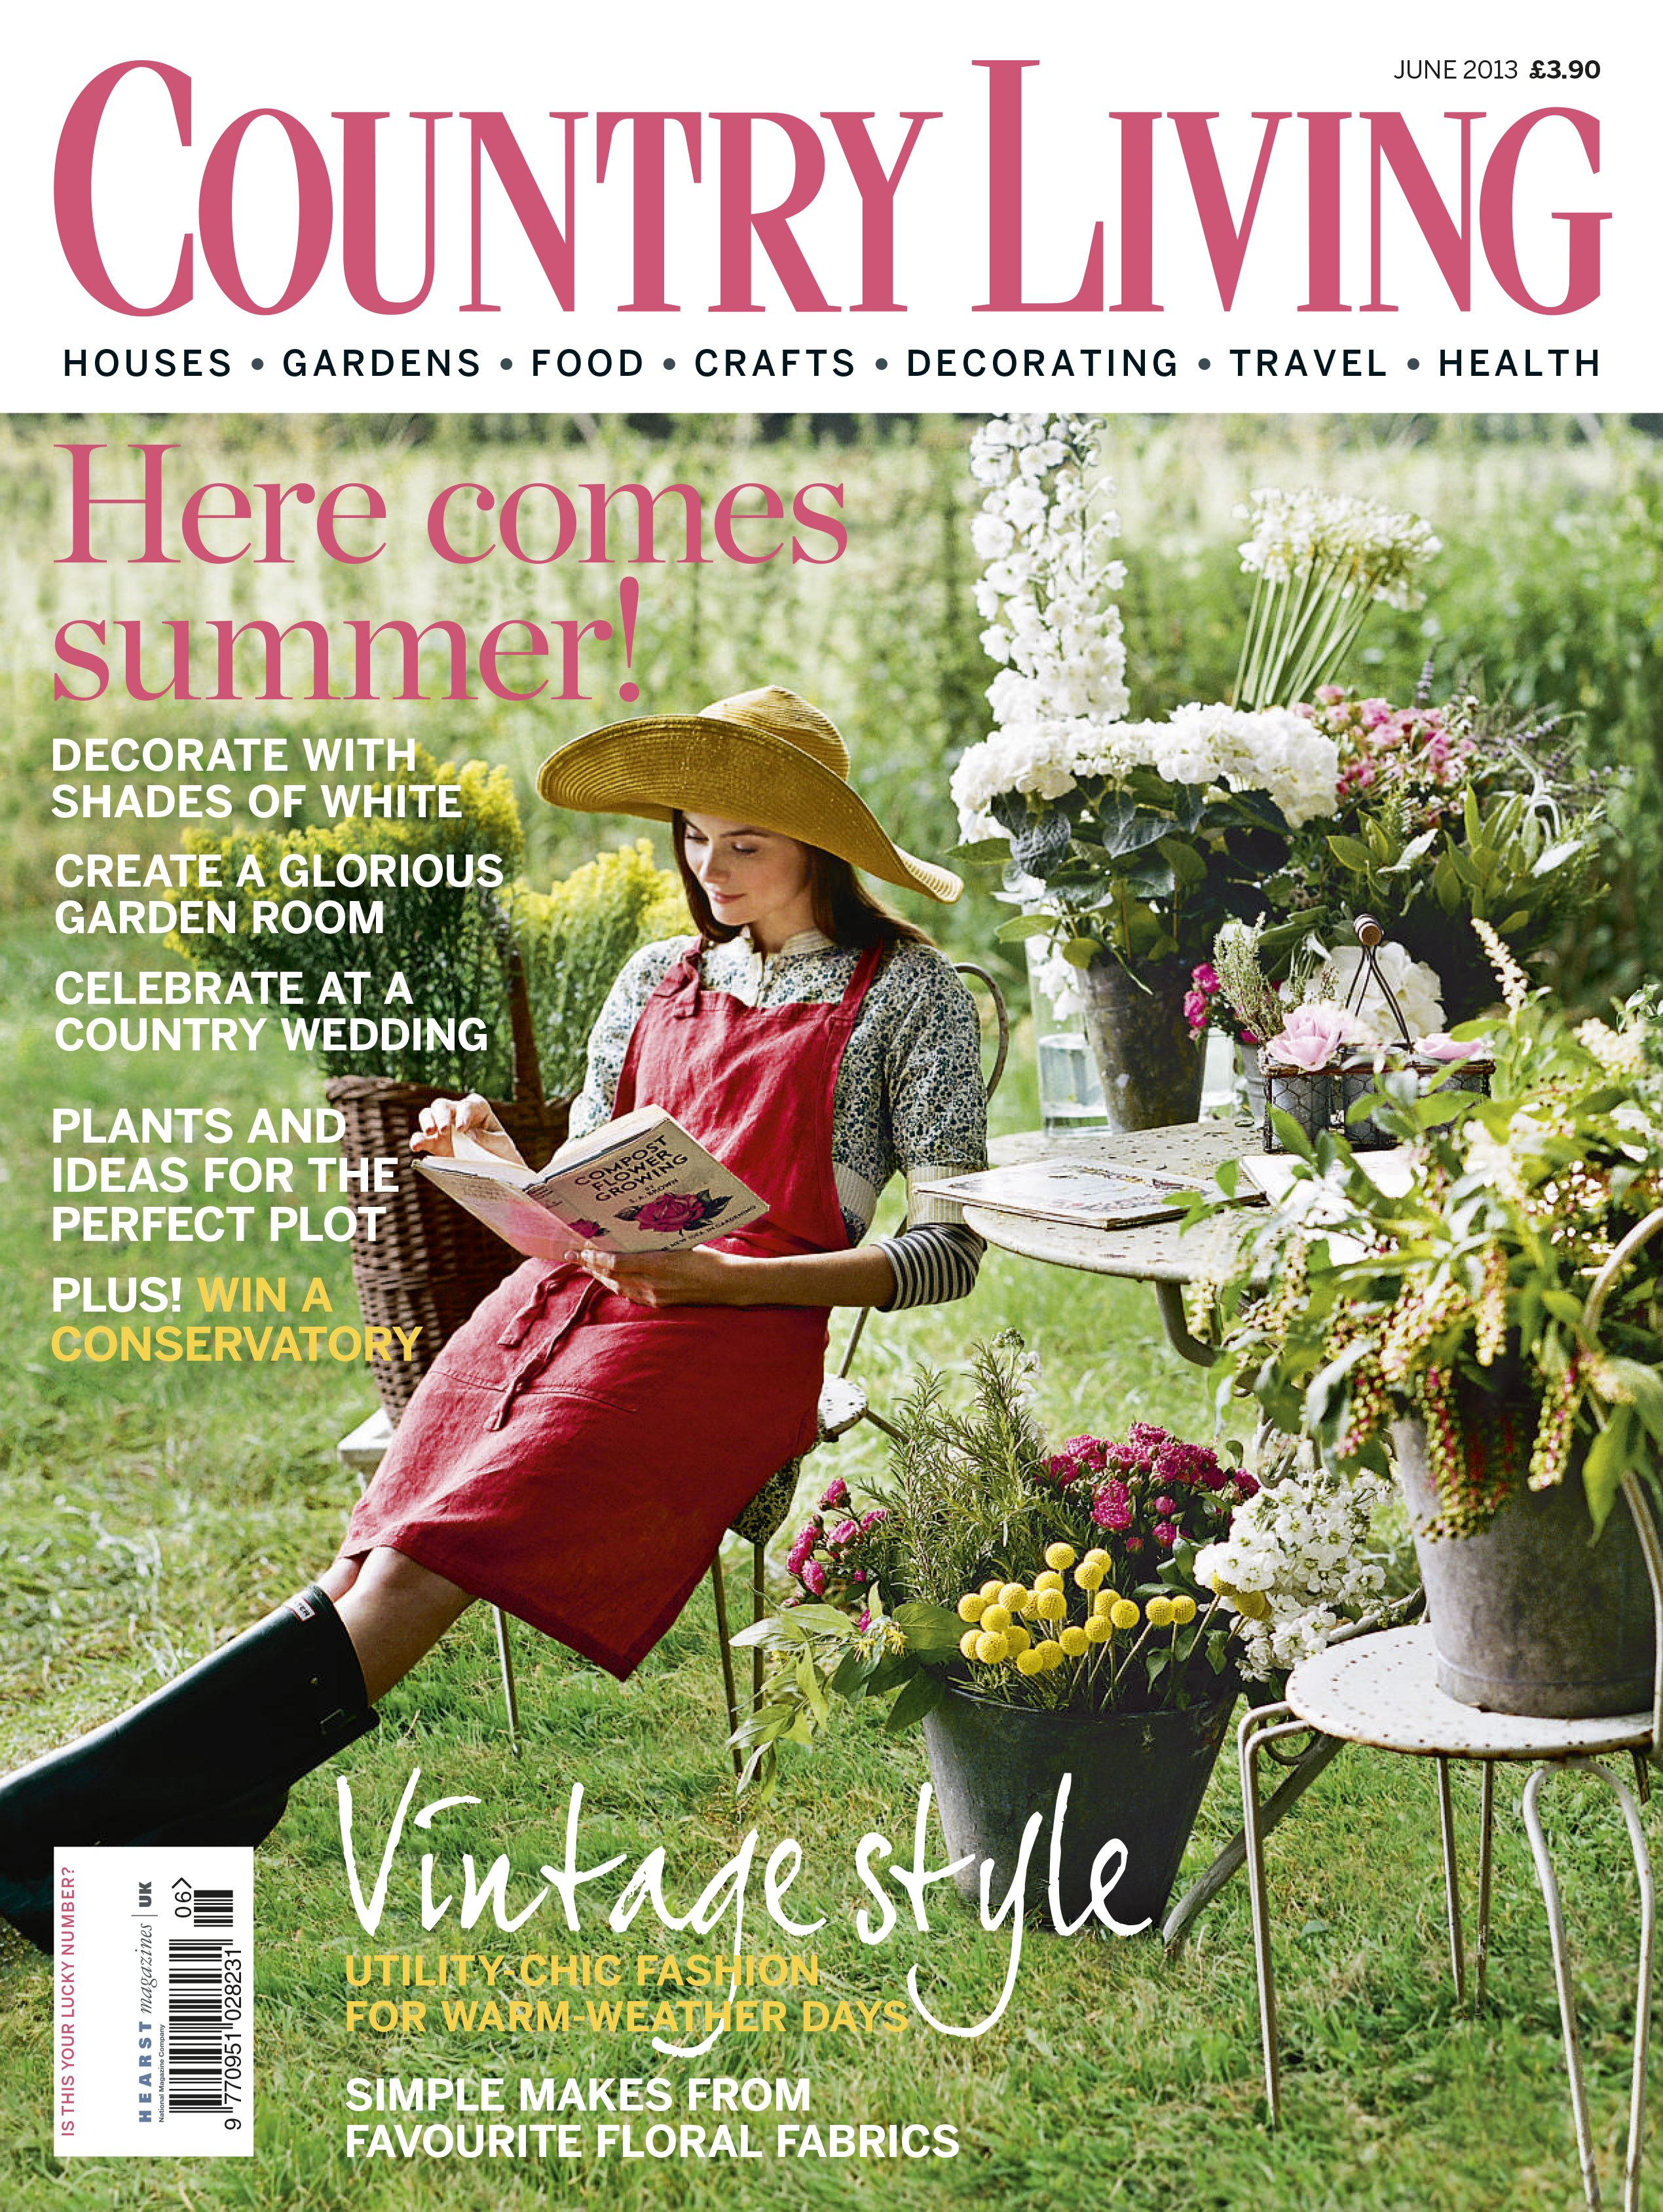 Country Living June 2013 Cover Countrylivinged Com Country Living Uk Country Living Magazine Country Living